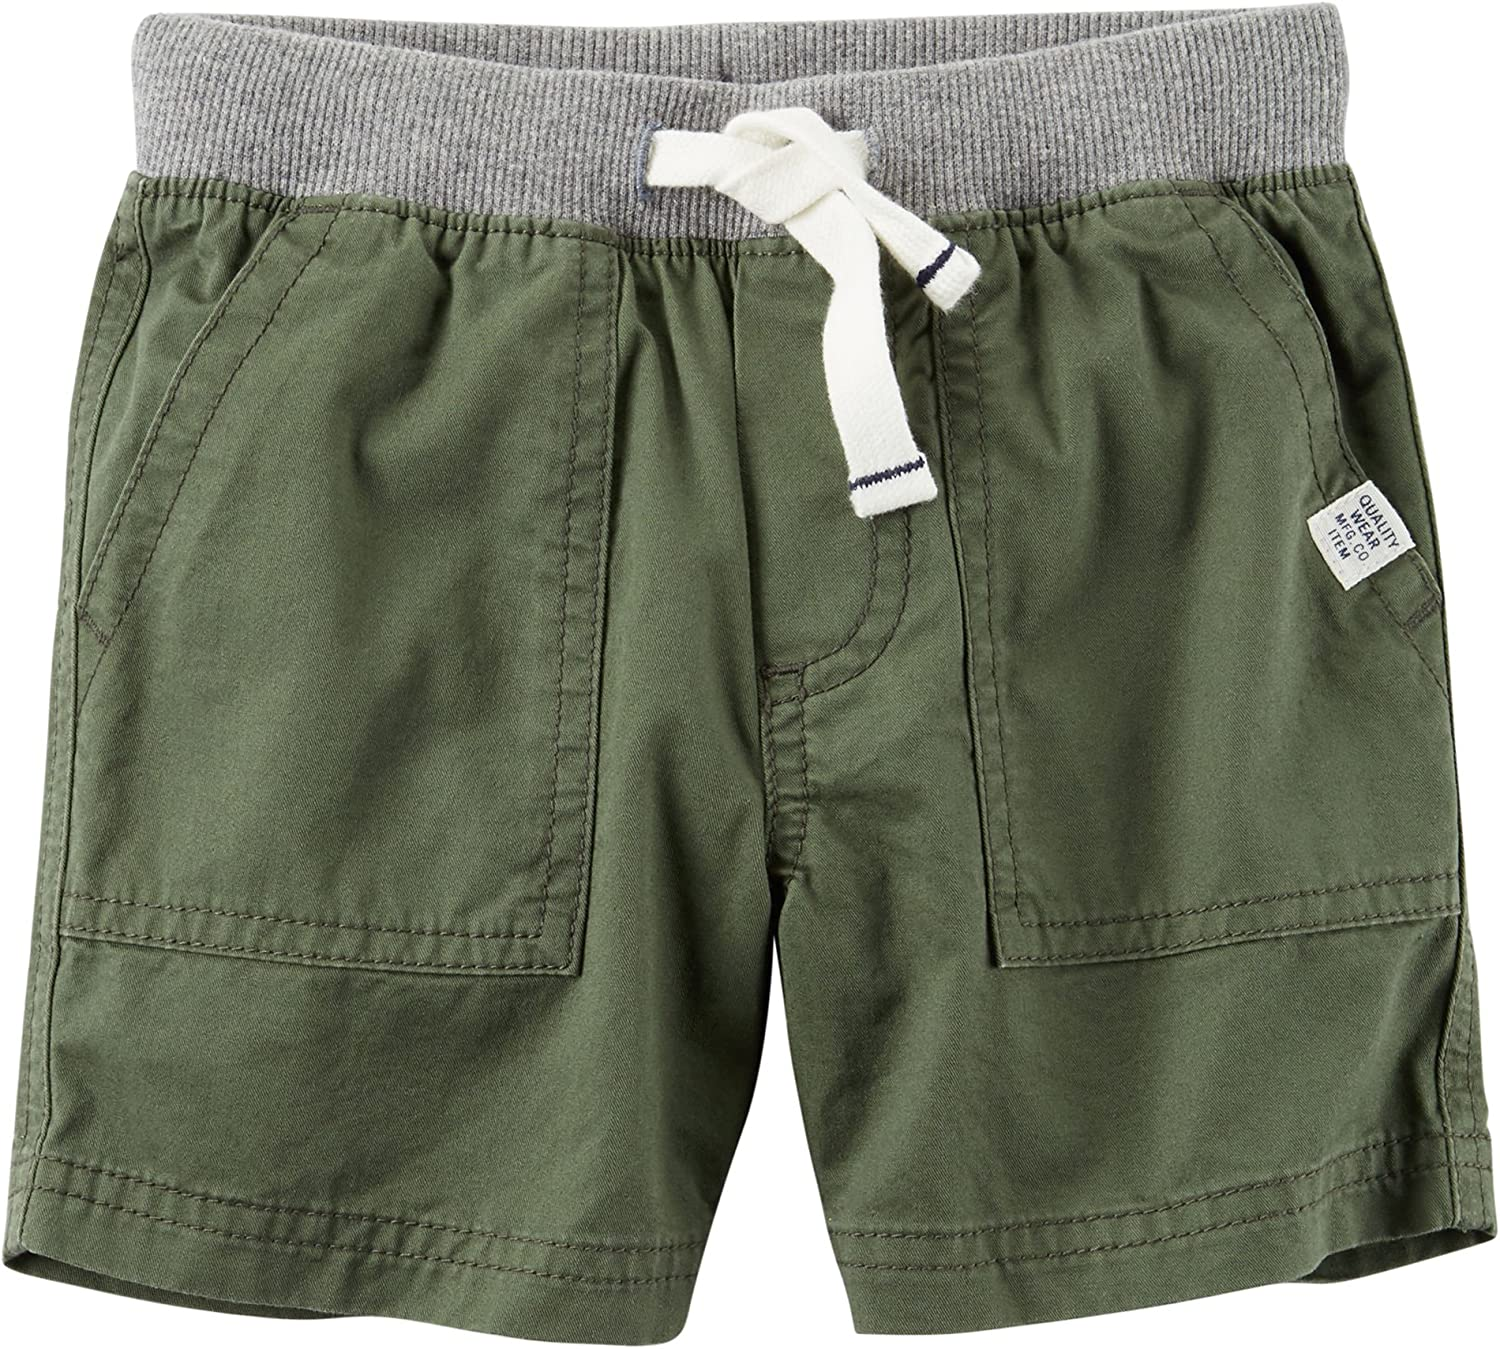 3 Months Carters Baby Boys Olive Twill Pull On Shorts